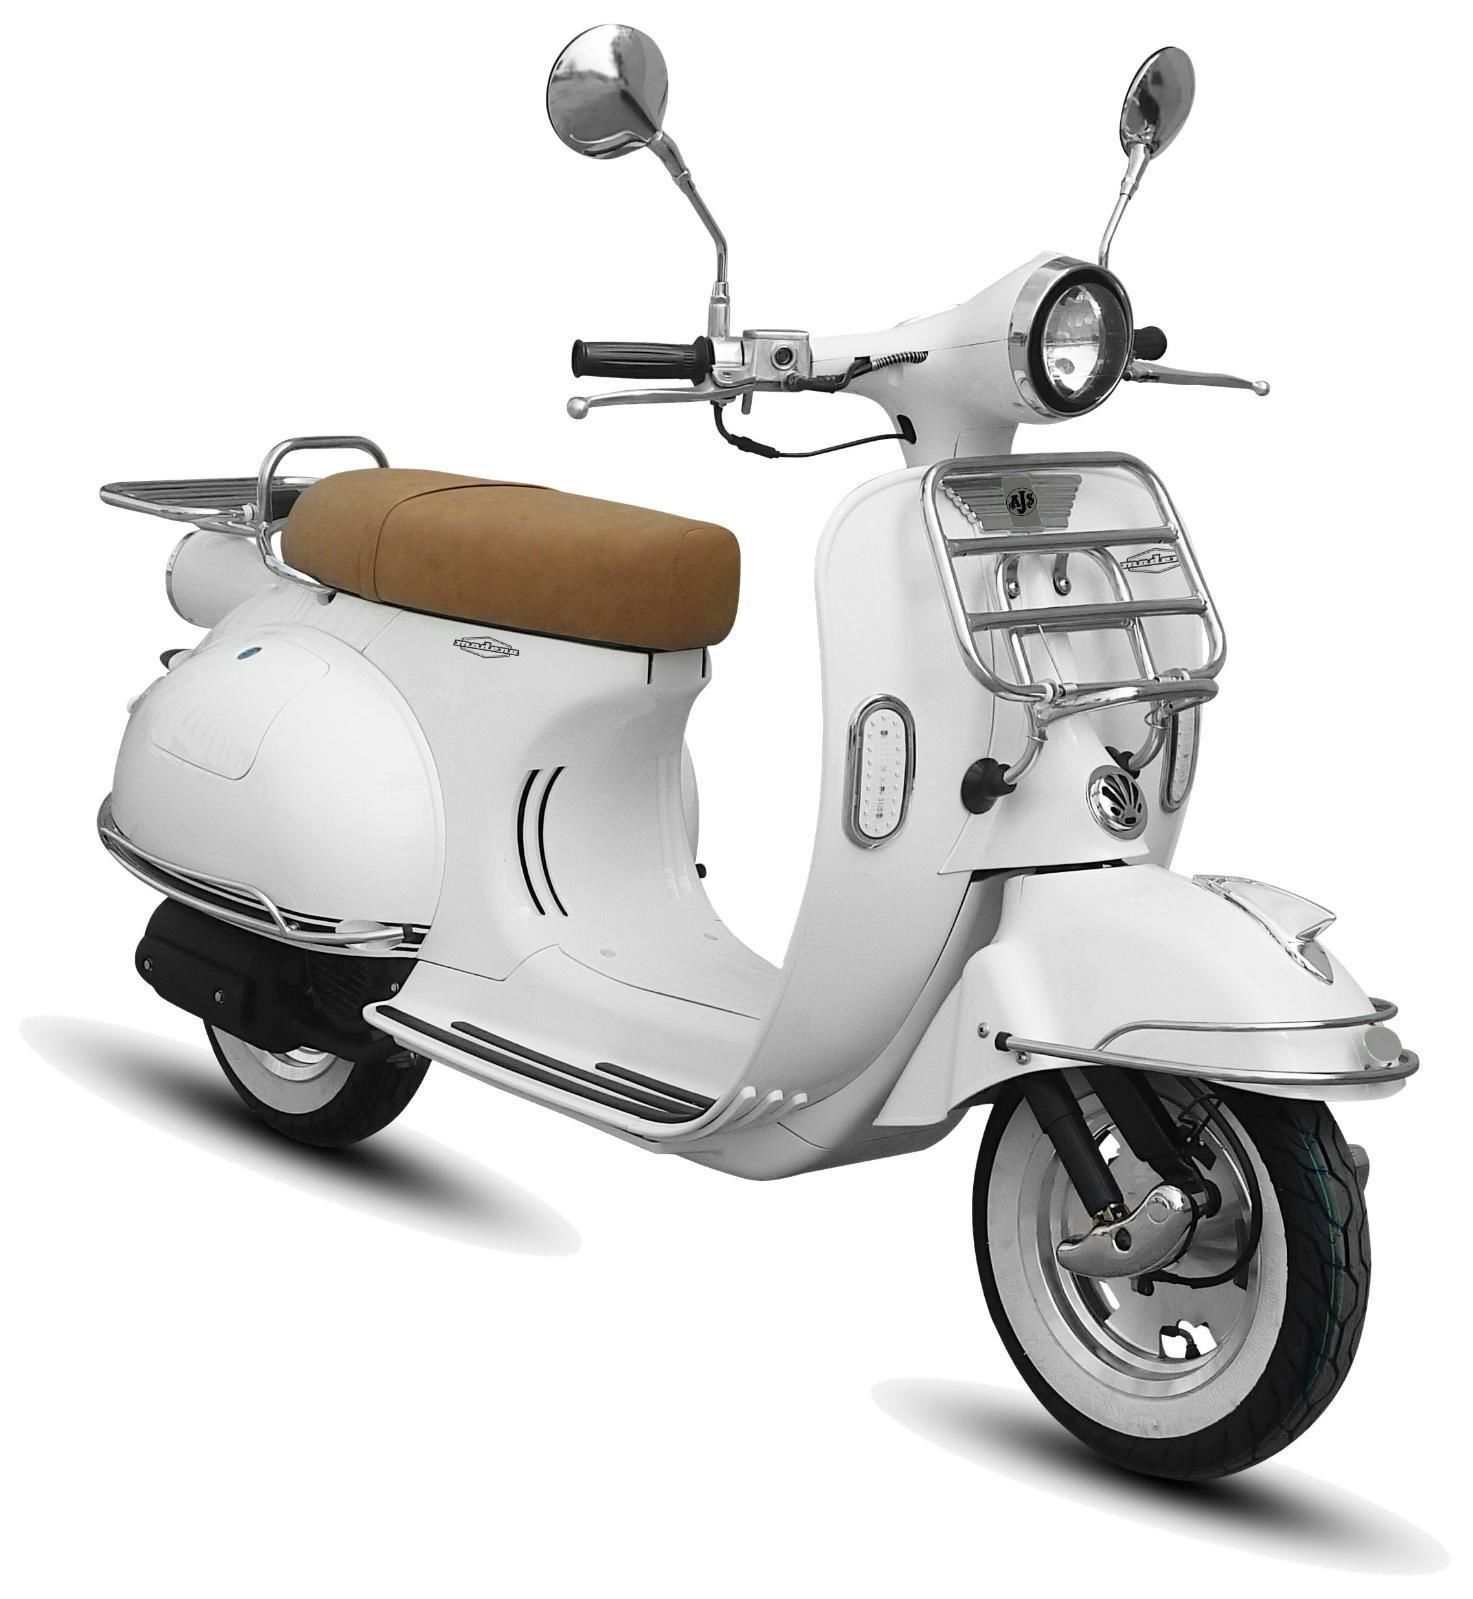 ajs modena 125 1960s vespa lambretta style scooter. Black Bedroom Furniture Sets. Home Design Ideas